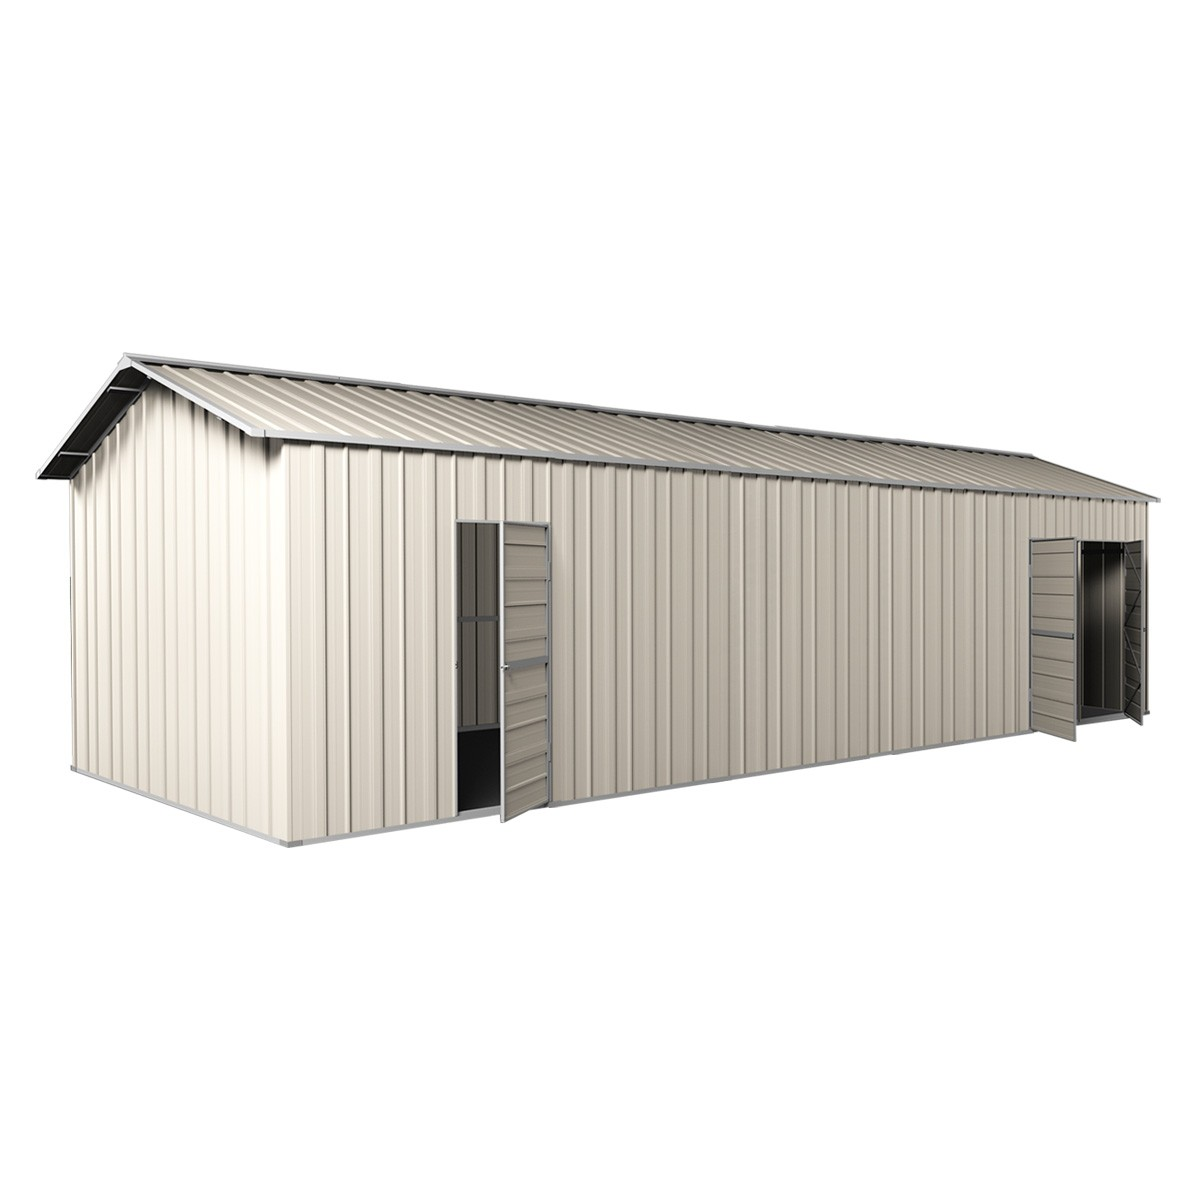 Double Garage Design In Sidcup: Garage Workshop Shed 3.6m X 9.12m X 3m Side Double Doors